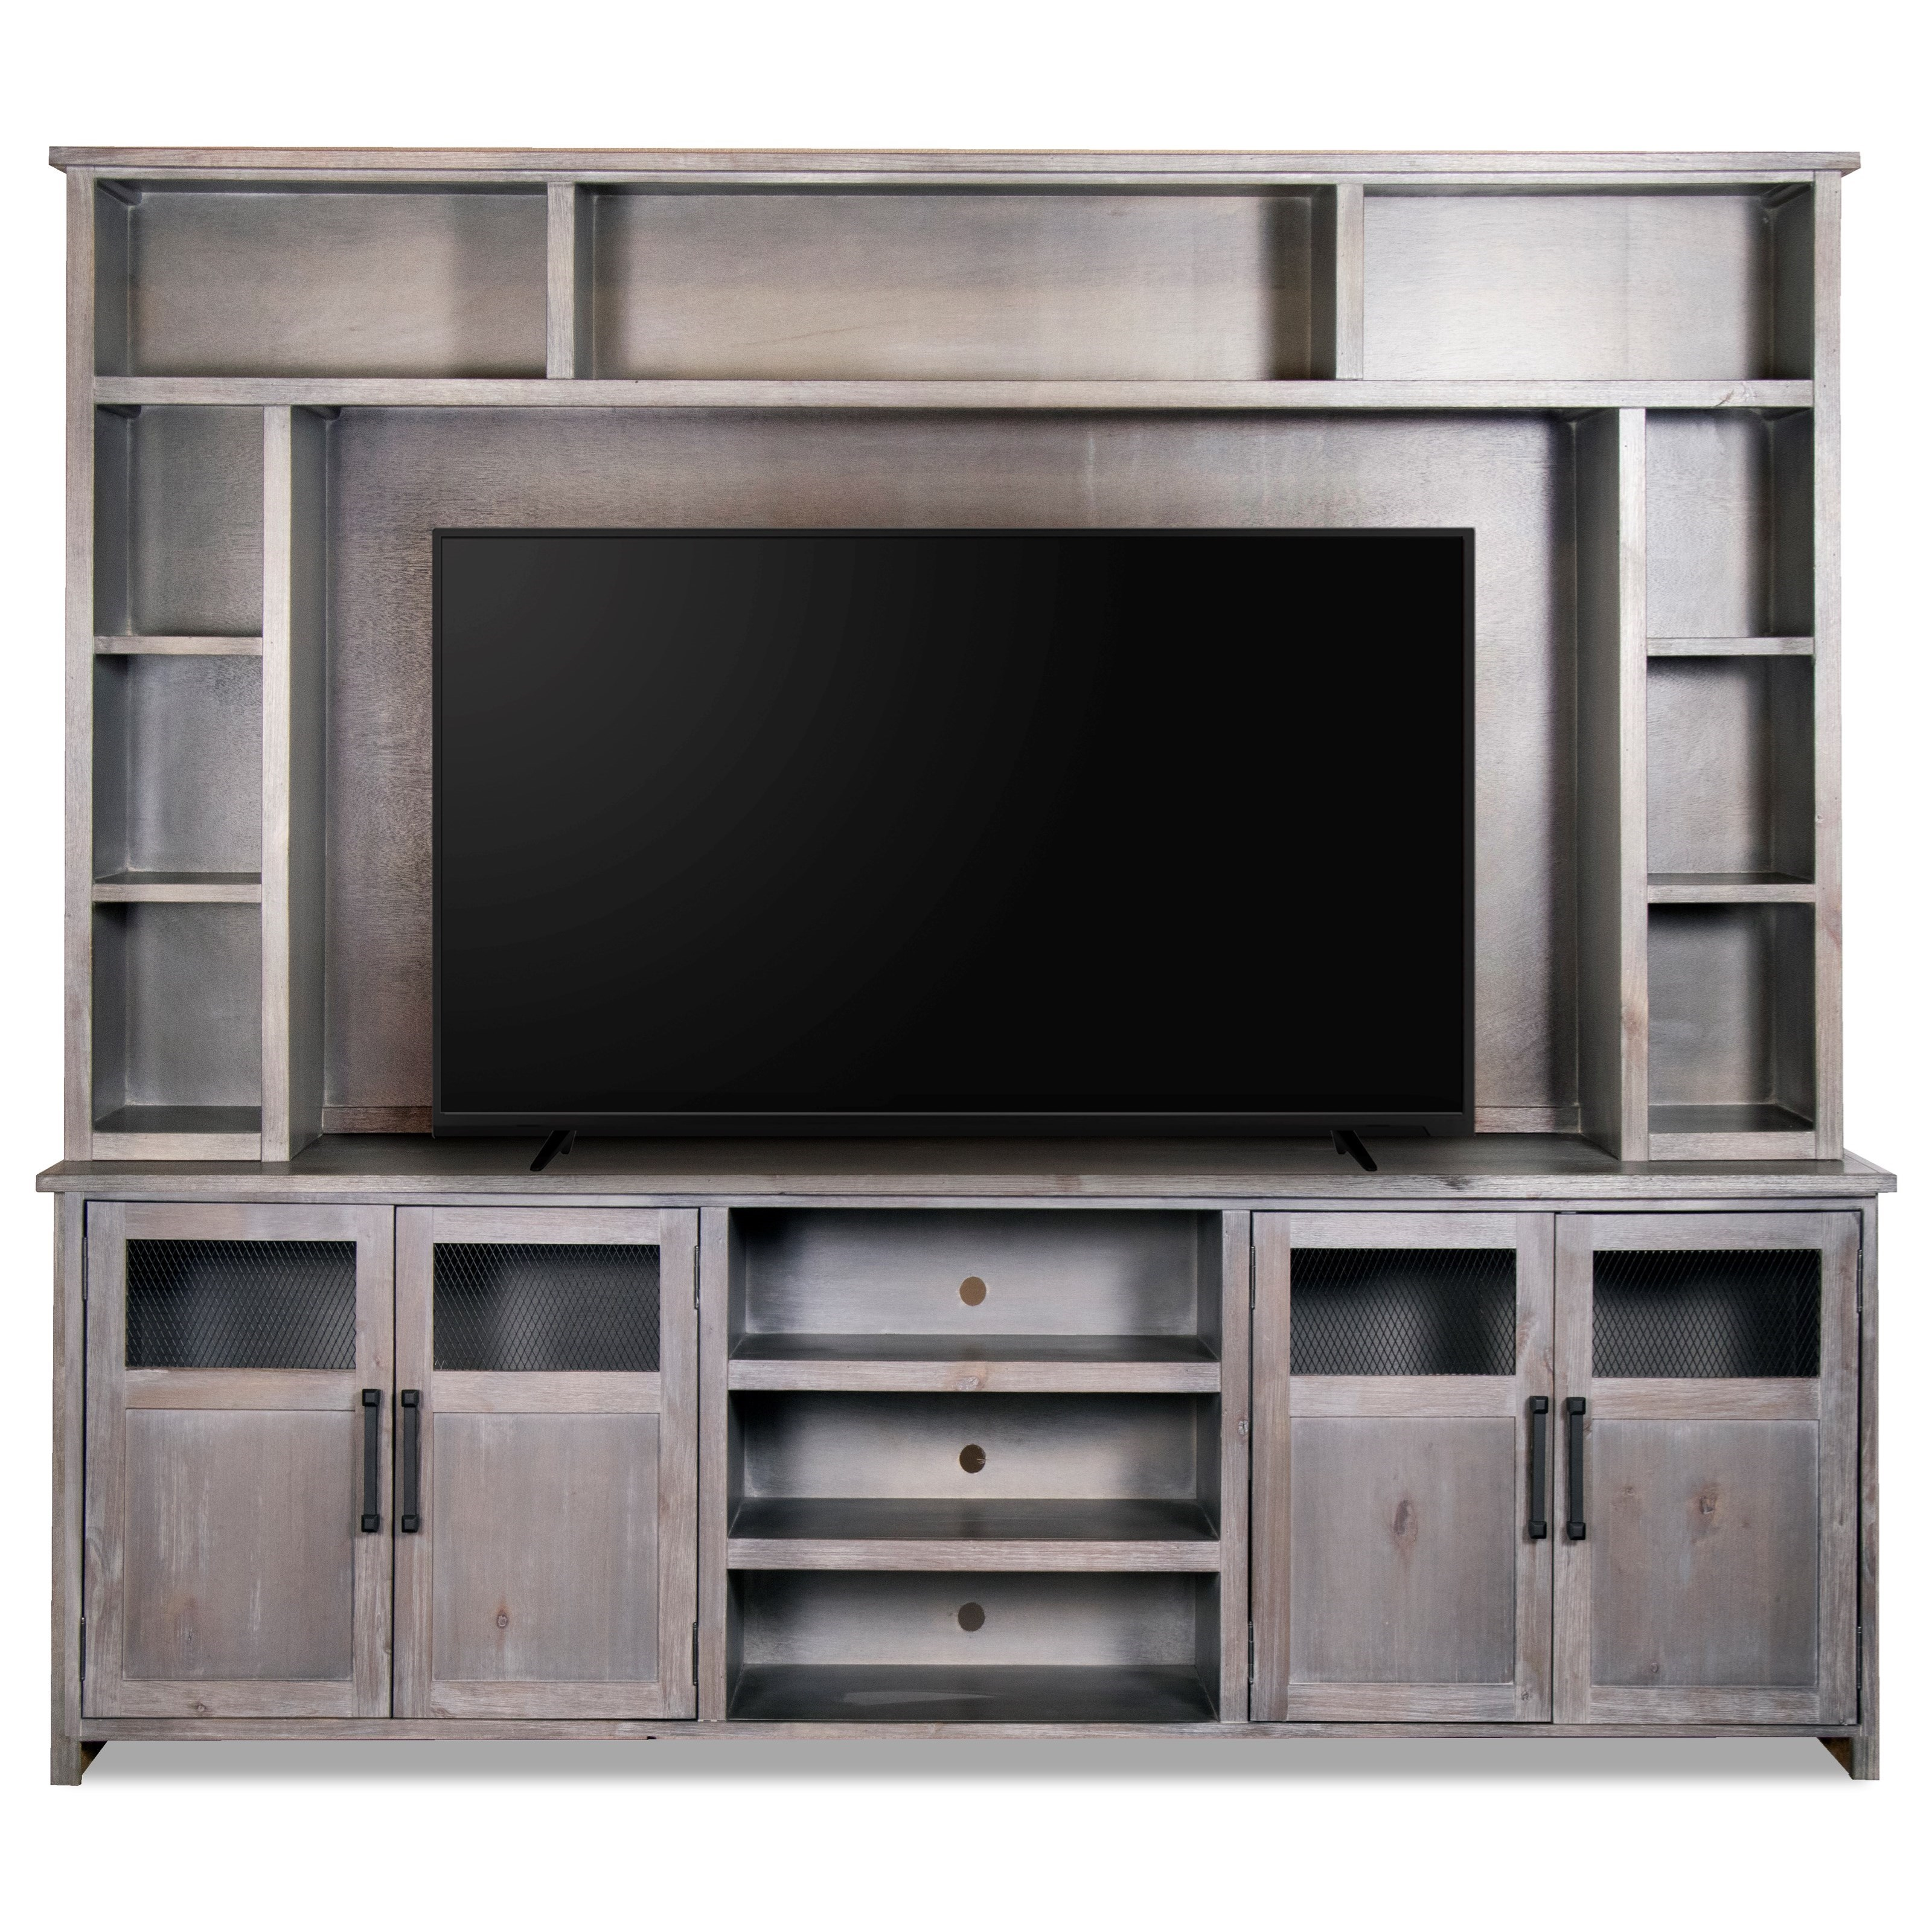 Maison Entertainment Console by Legends Furniture at Smart Buy Furniture